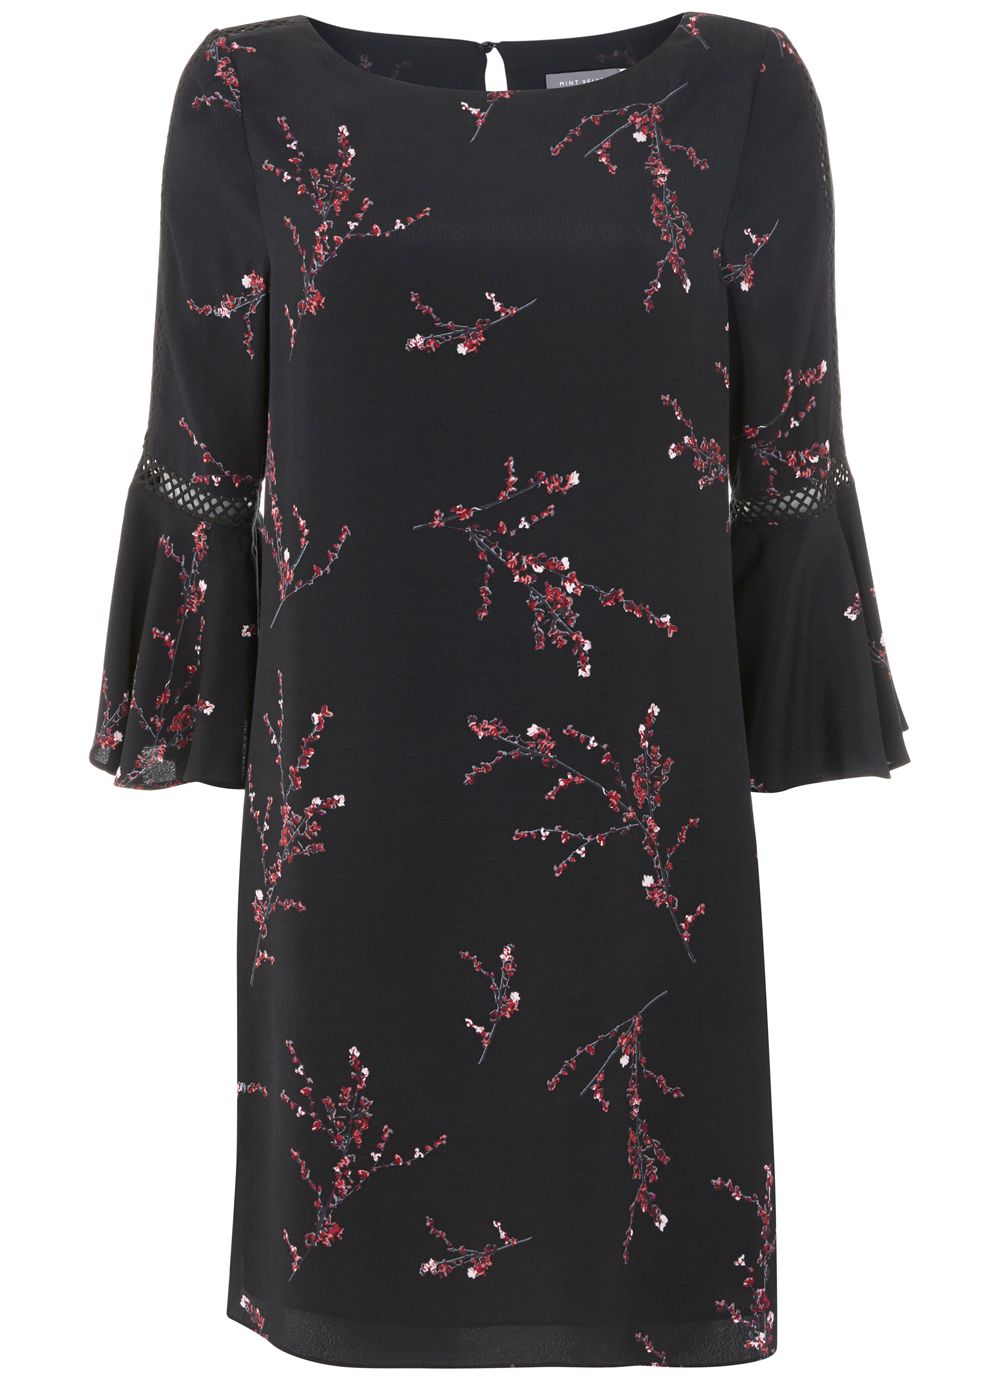 Mint Velvet Blossom Print Swing Dress, Multi-Coloured